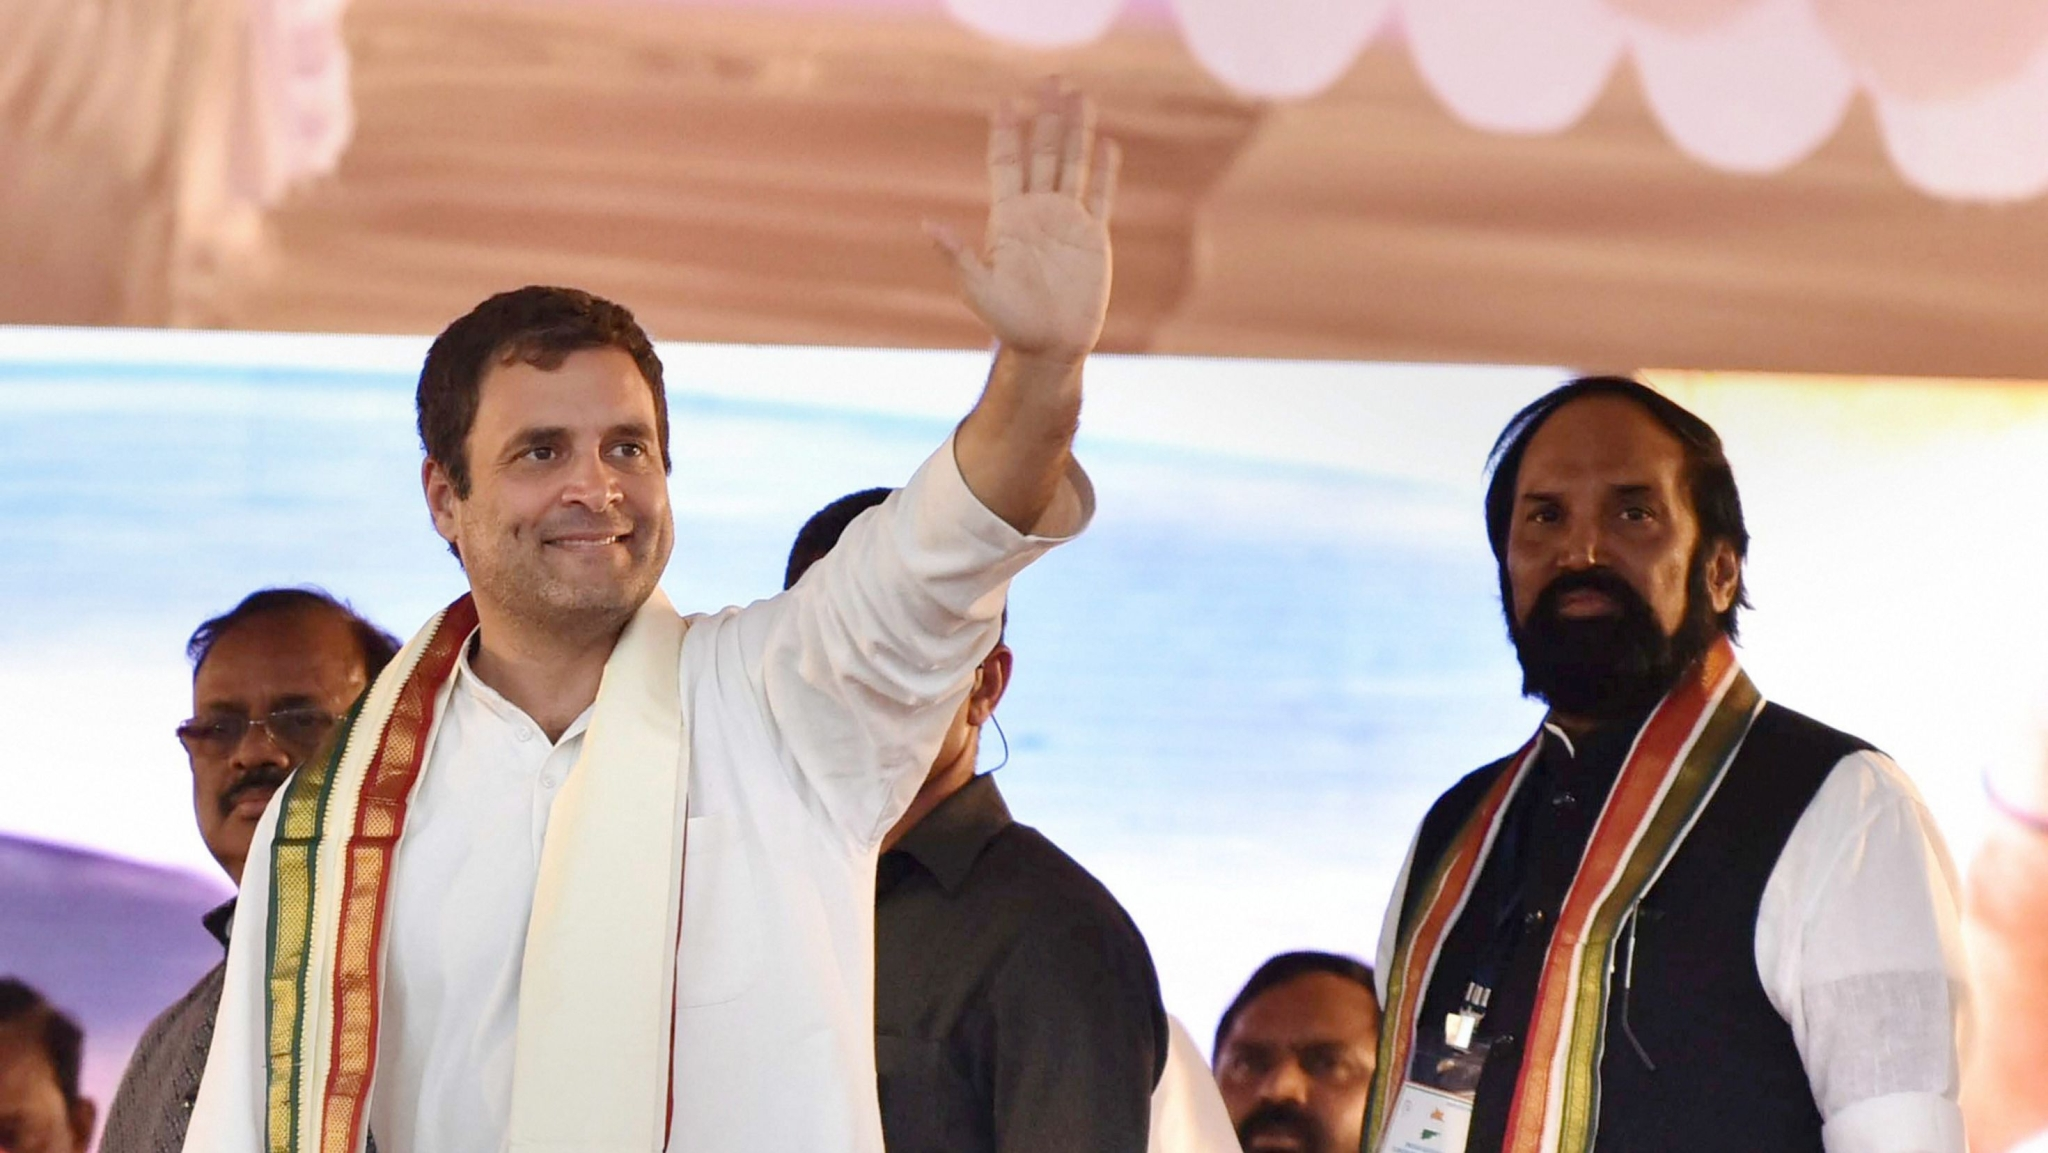 Cong Will Implement Minimum Income Gurantee Scheme If Voted: Rahul